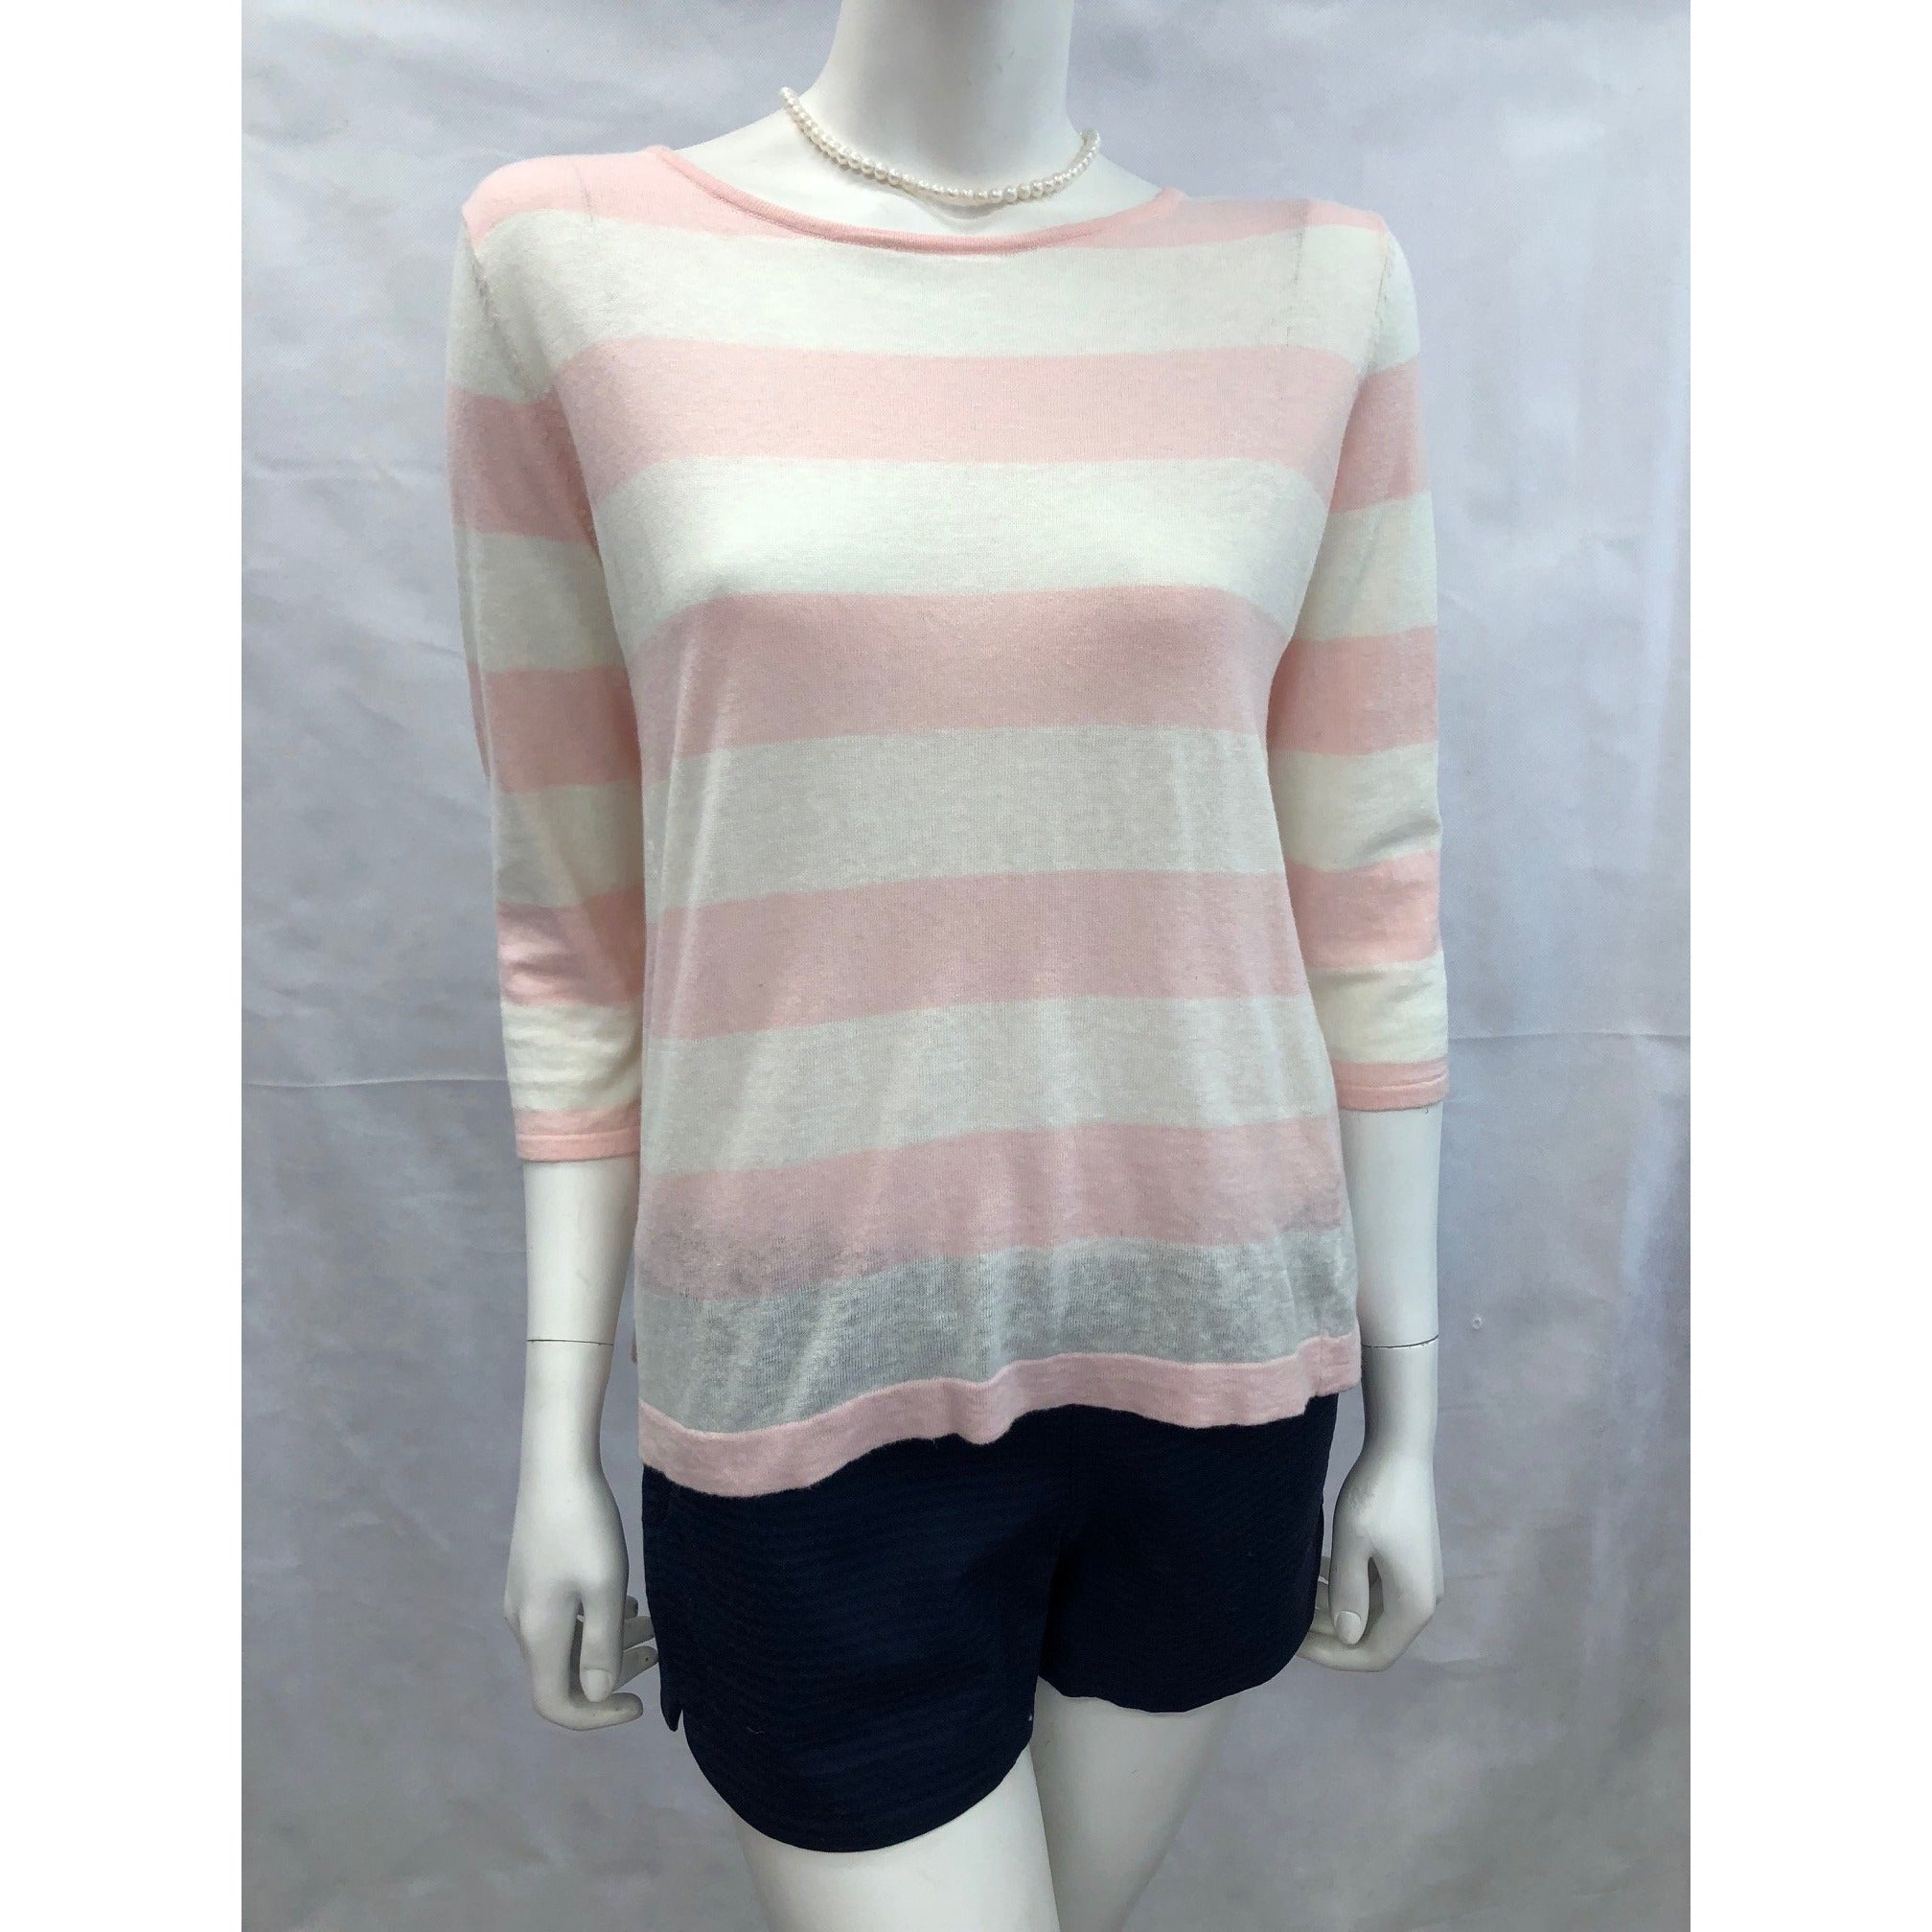 Cortland Park Taylor Striped Top Pink/White